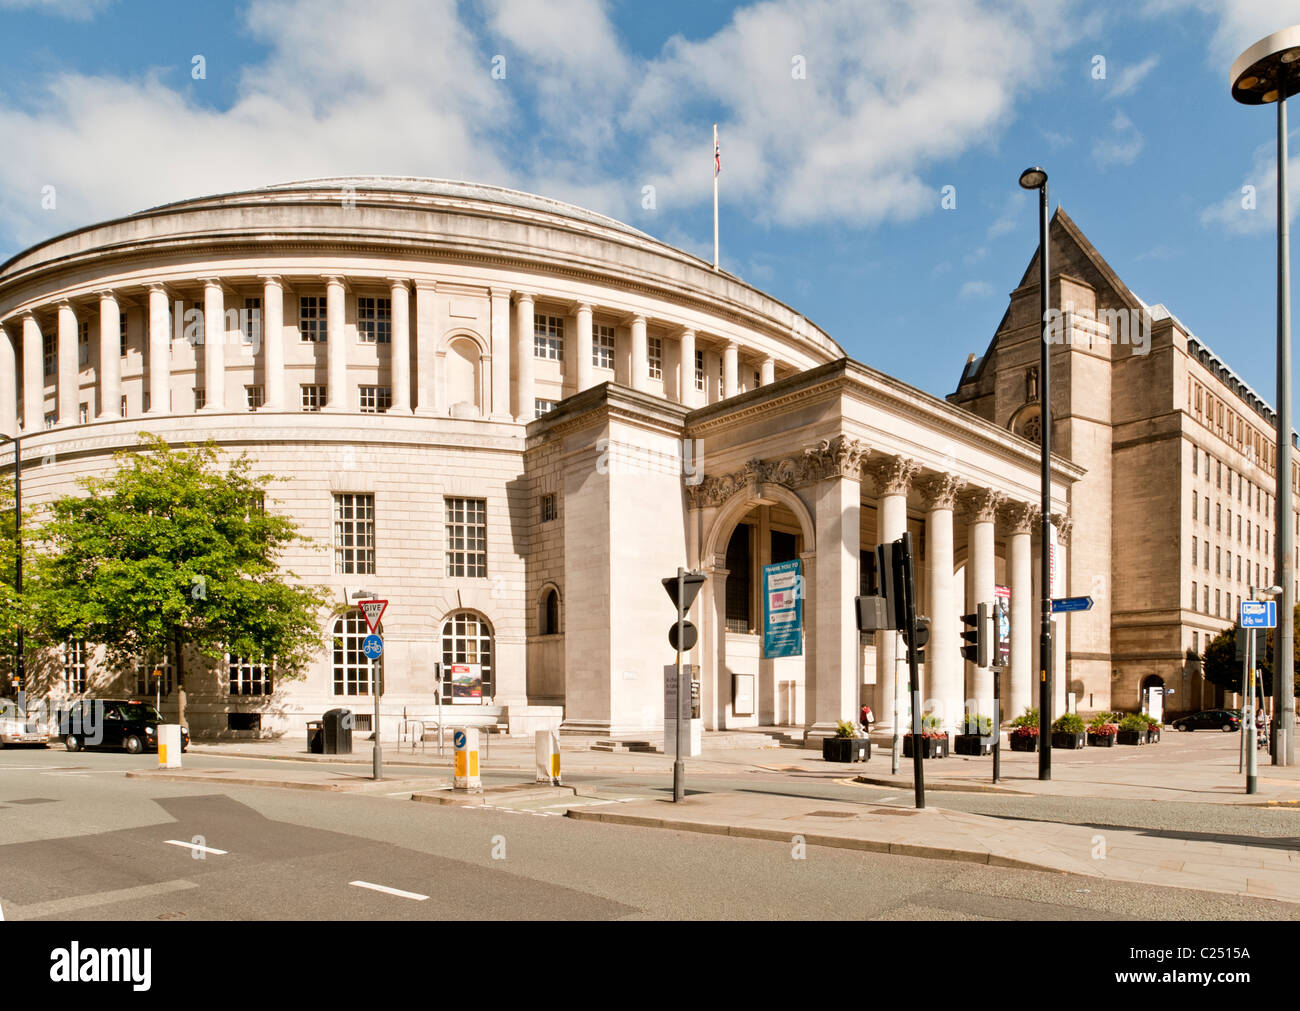 Central library and Town Hall, Manchester, England, UK - Stock Image